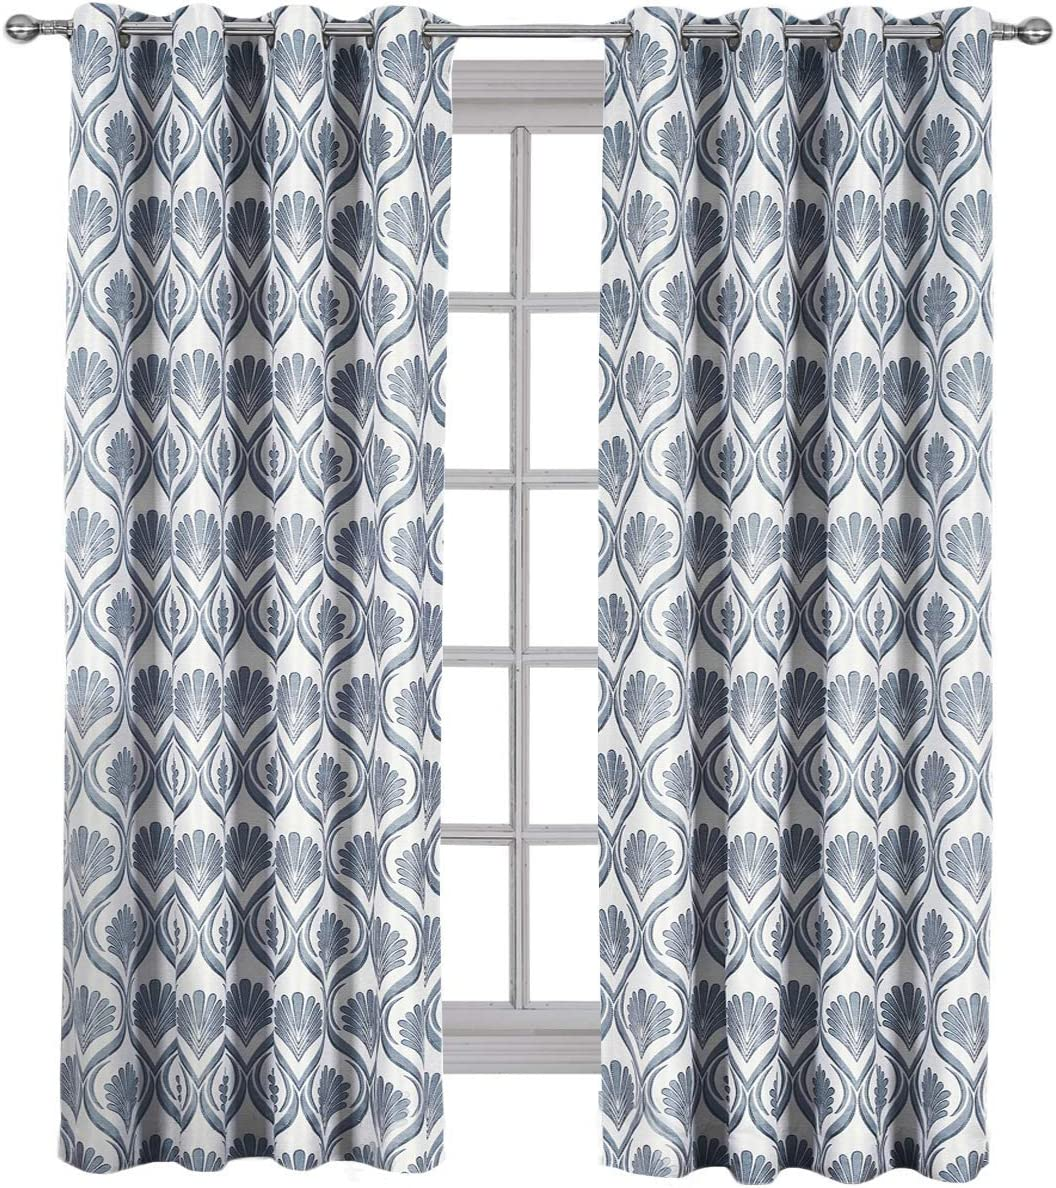 Royal Hotel Jacqueline Gray, Top Grommet Jacquard Window Curtain Panel, Set of 2 Panels, 108×120 Inches Pair